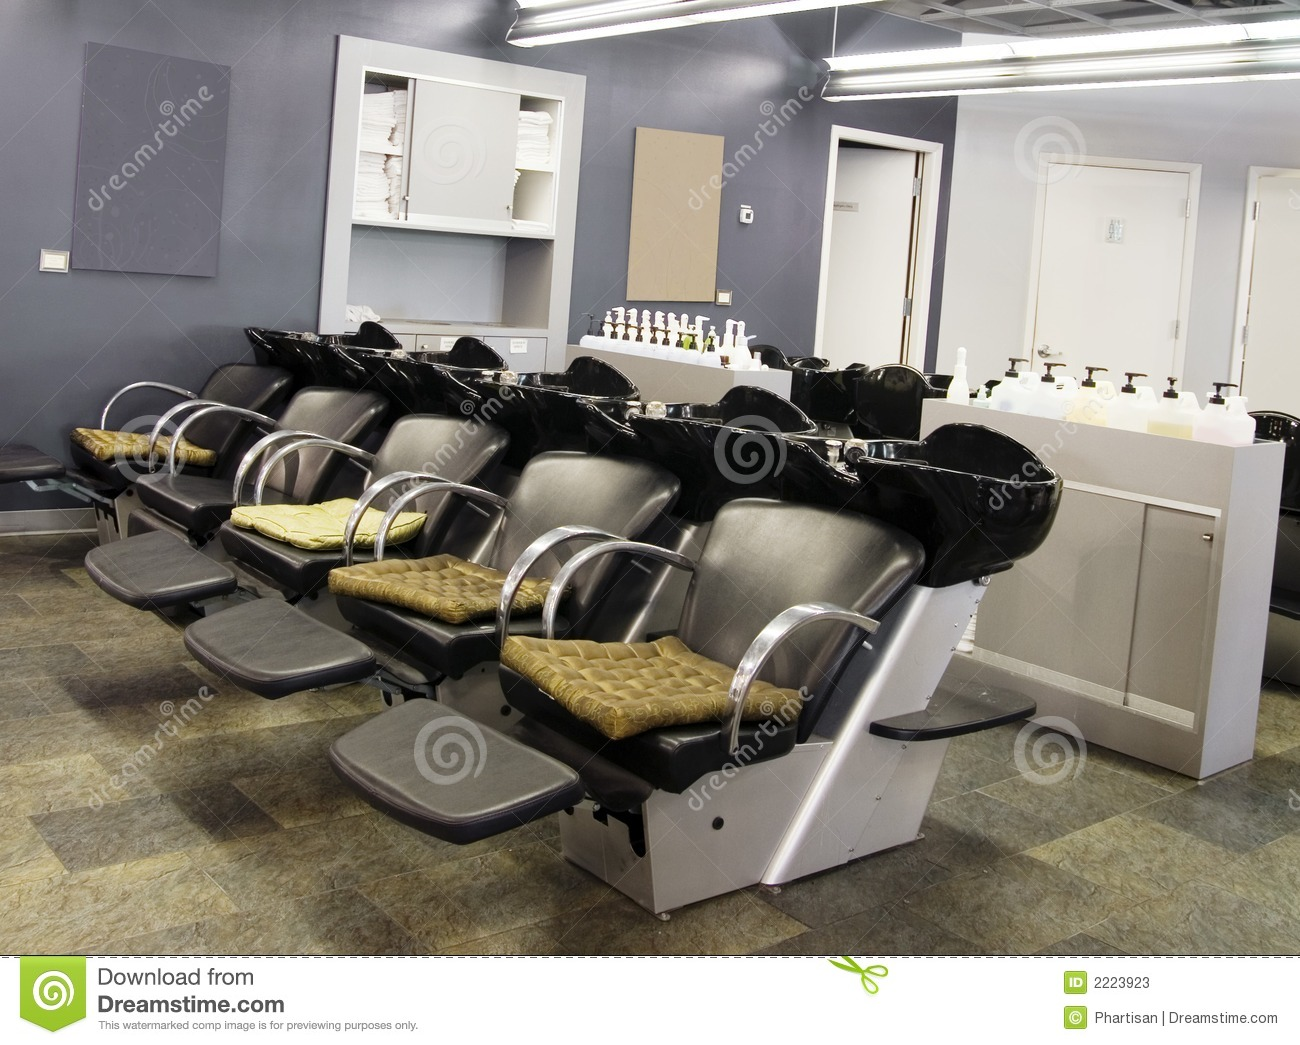 Health and beauty salon design stock image image 2223923 for Photos salon design